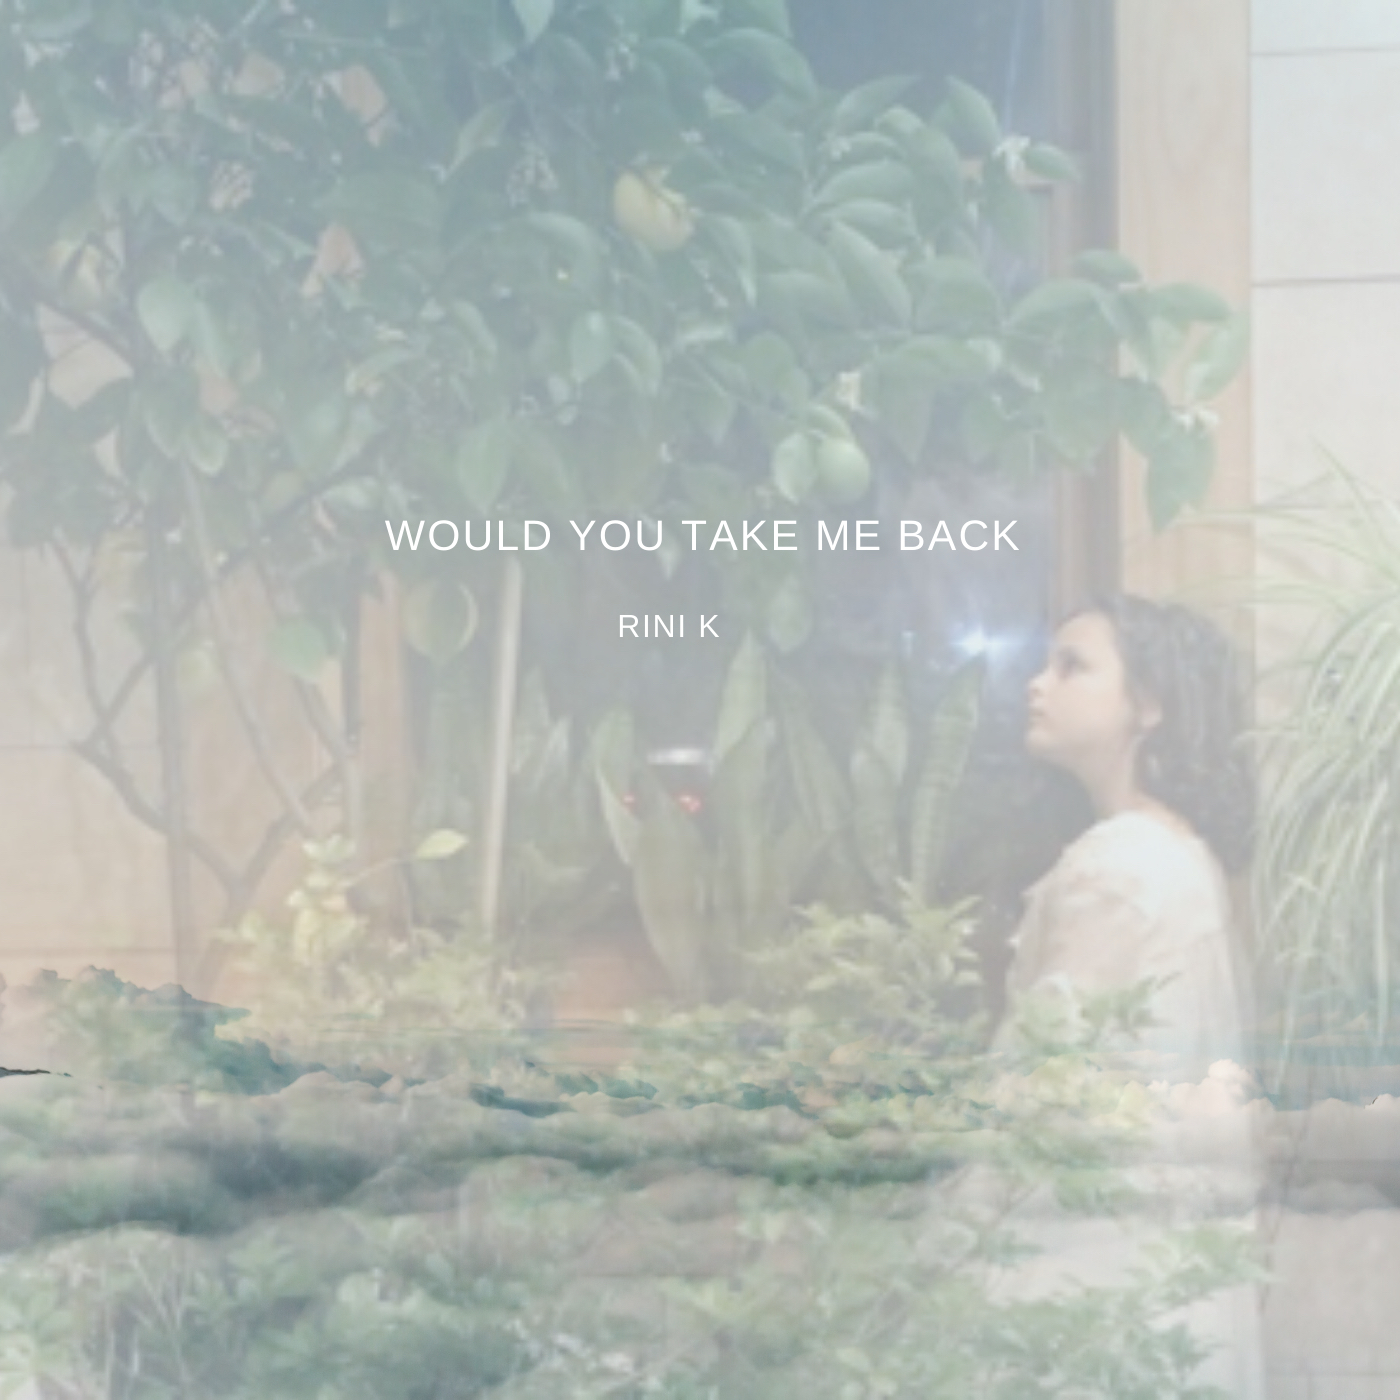 Would You Go With Me - Rini K